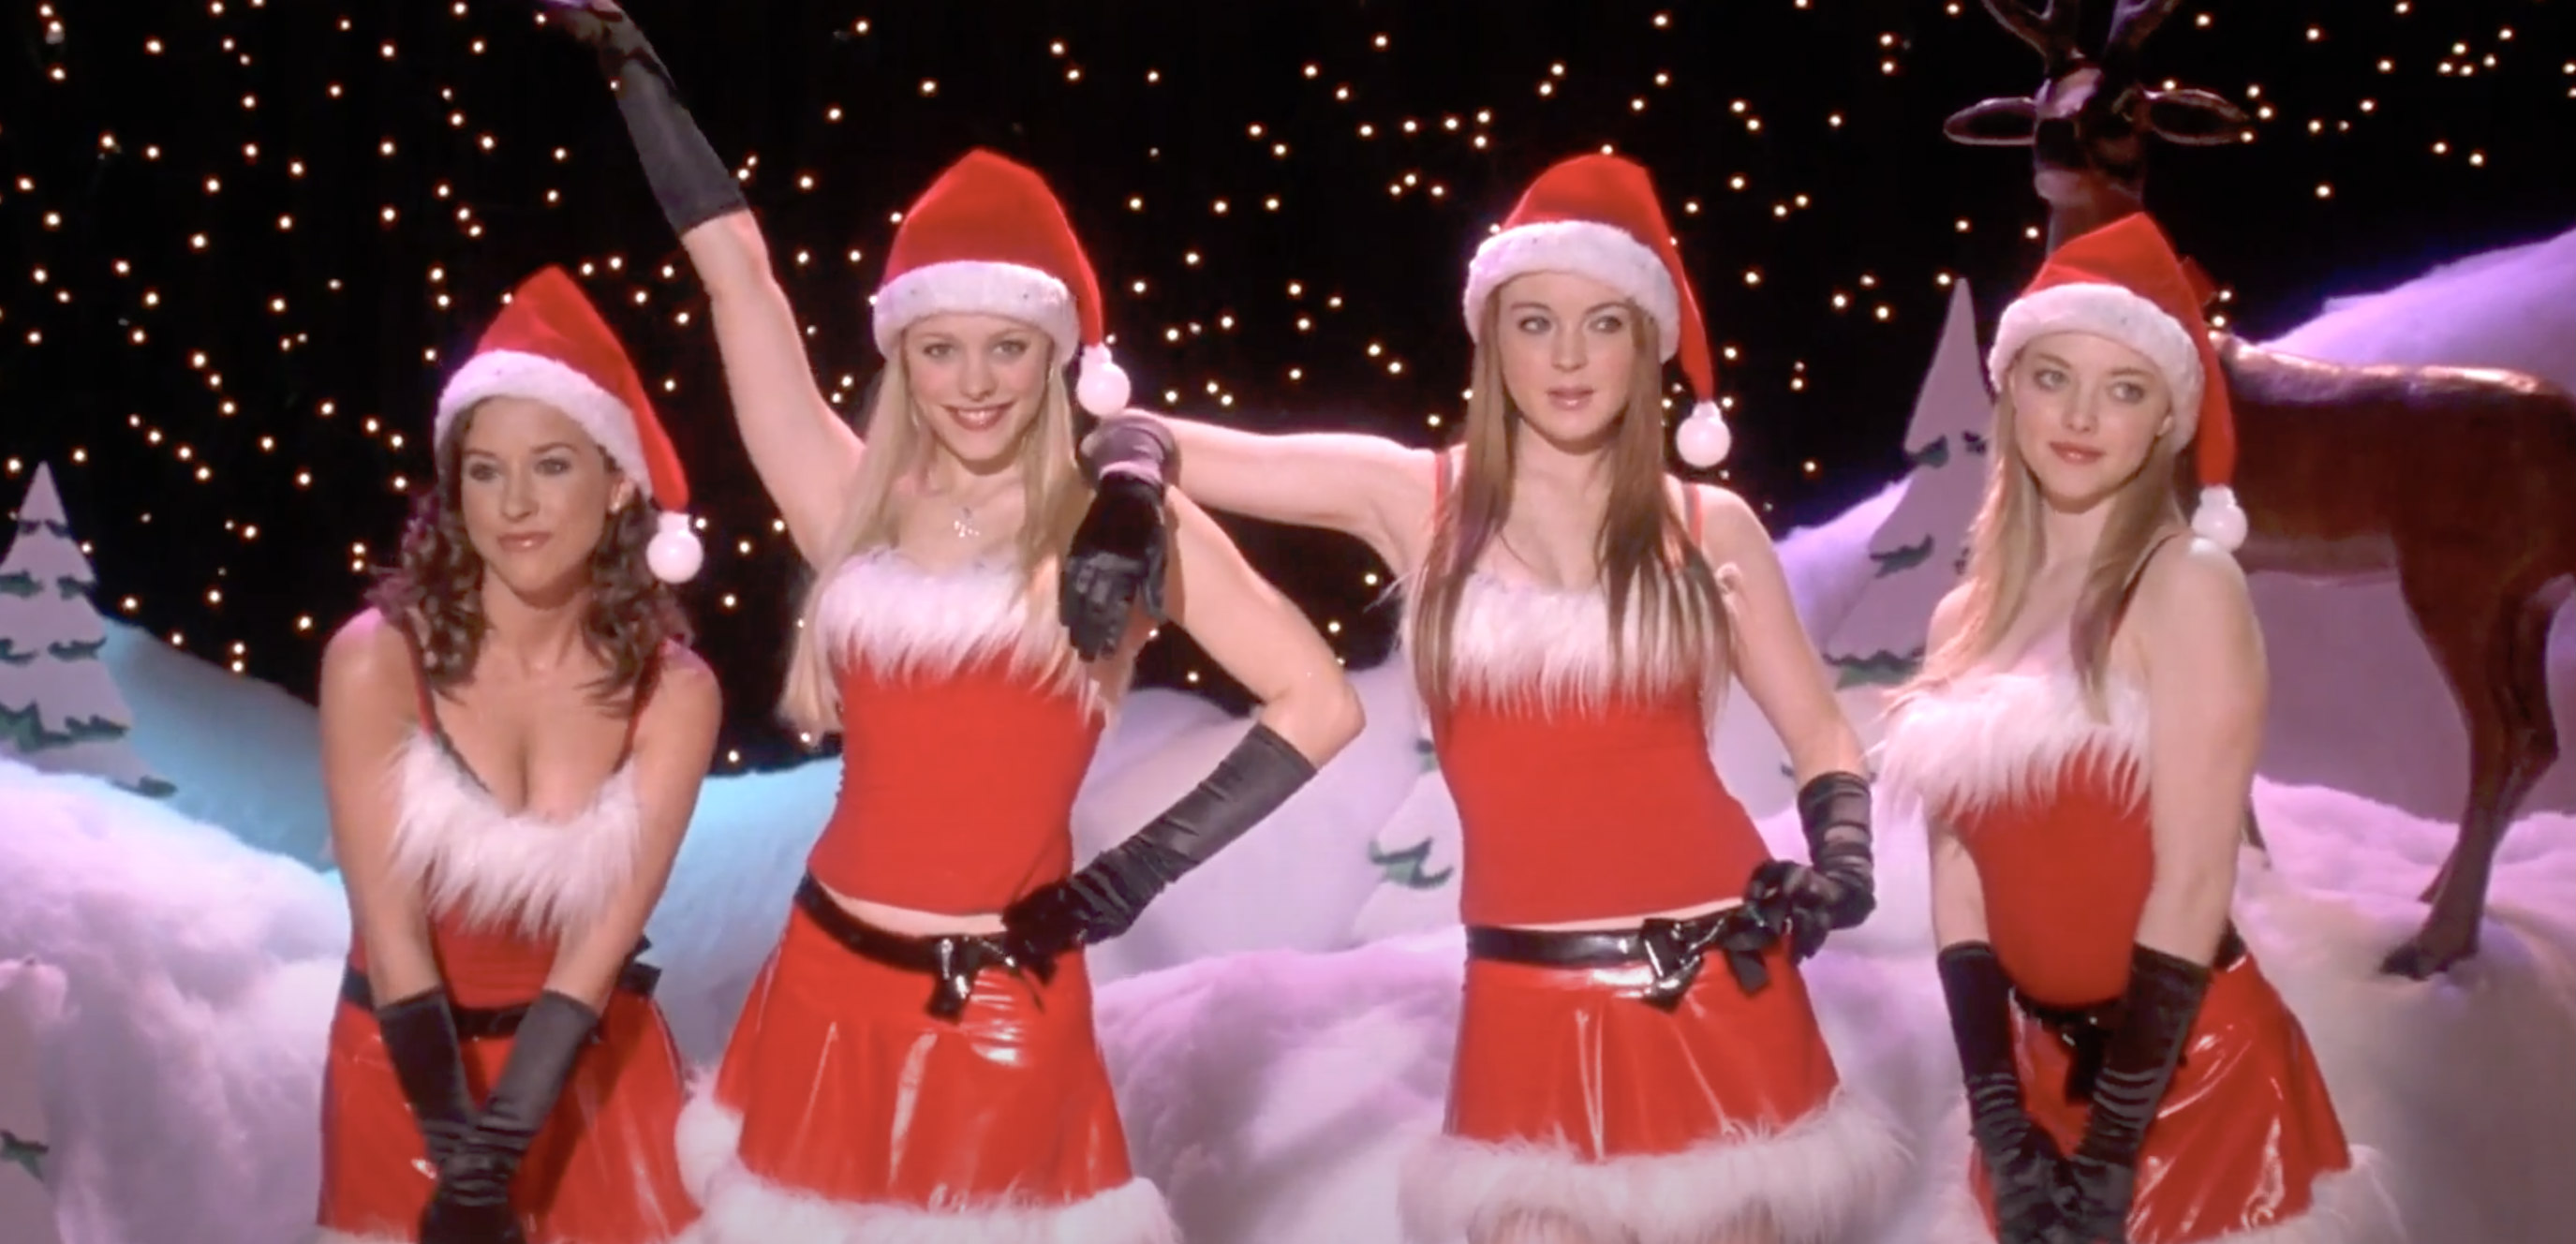 Mean Girls Christmas Dance Was Almost Even Risque